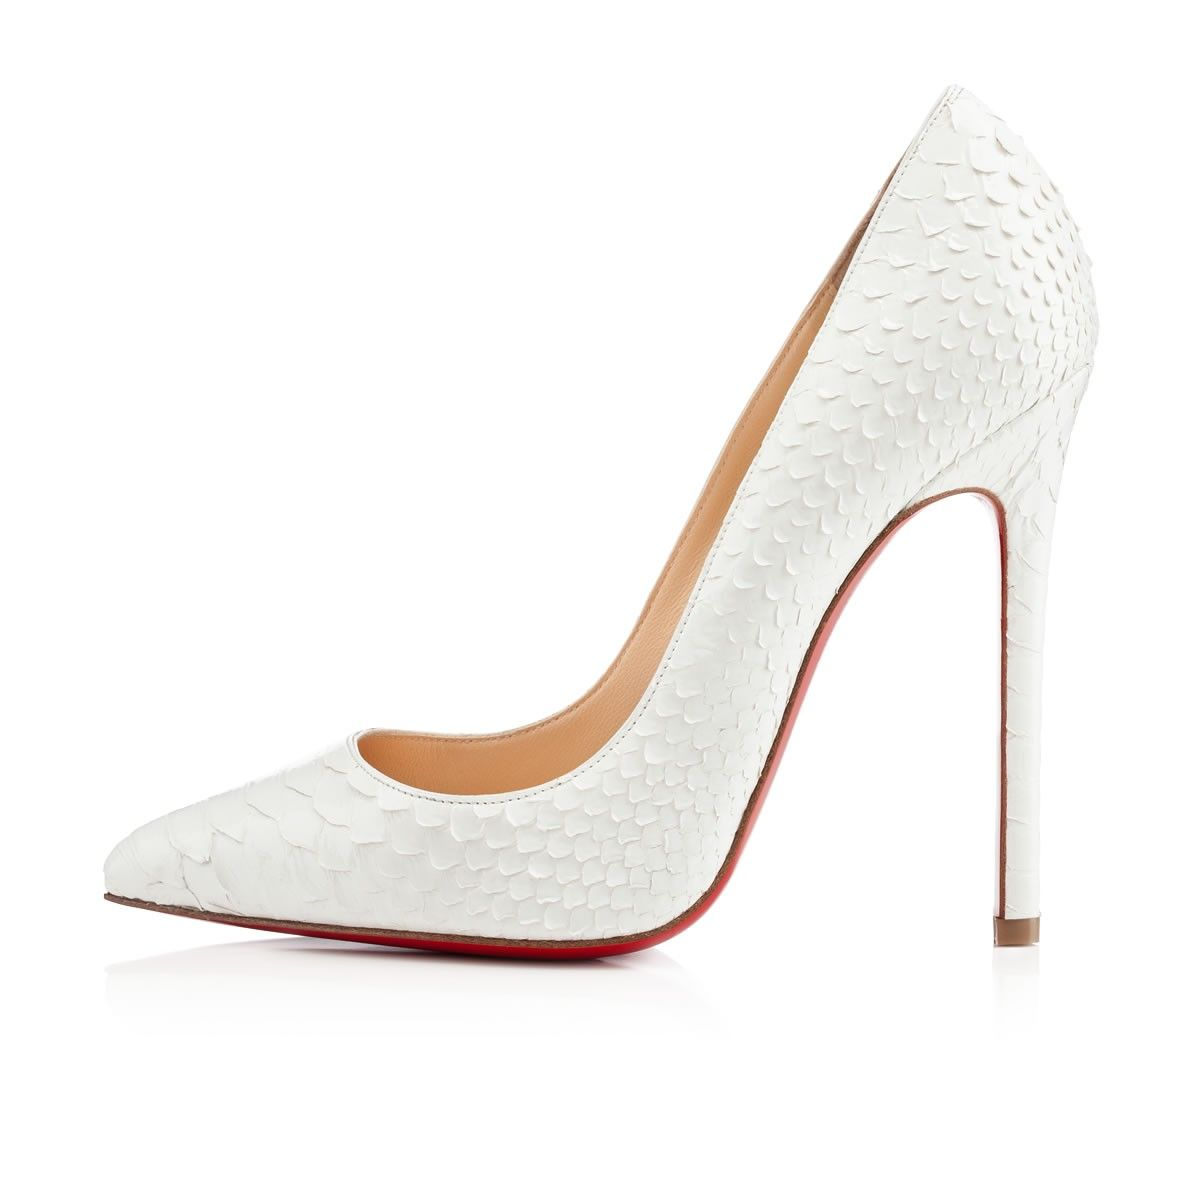 0b280bd1beb Women's White Pigalle Python Crystal | Shoes | Shoes, Louboutin ...